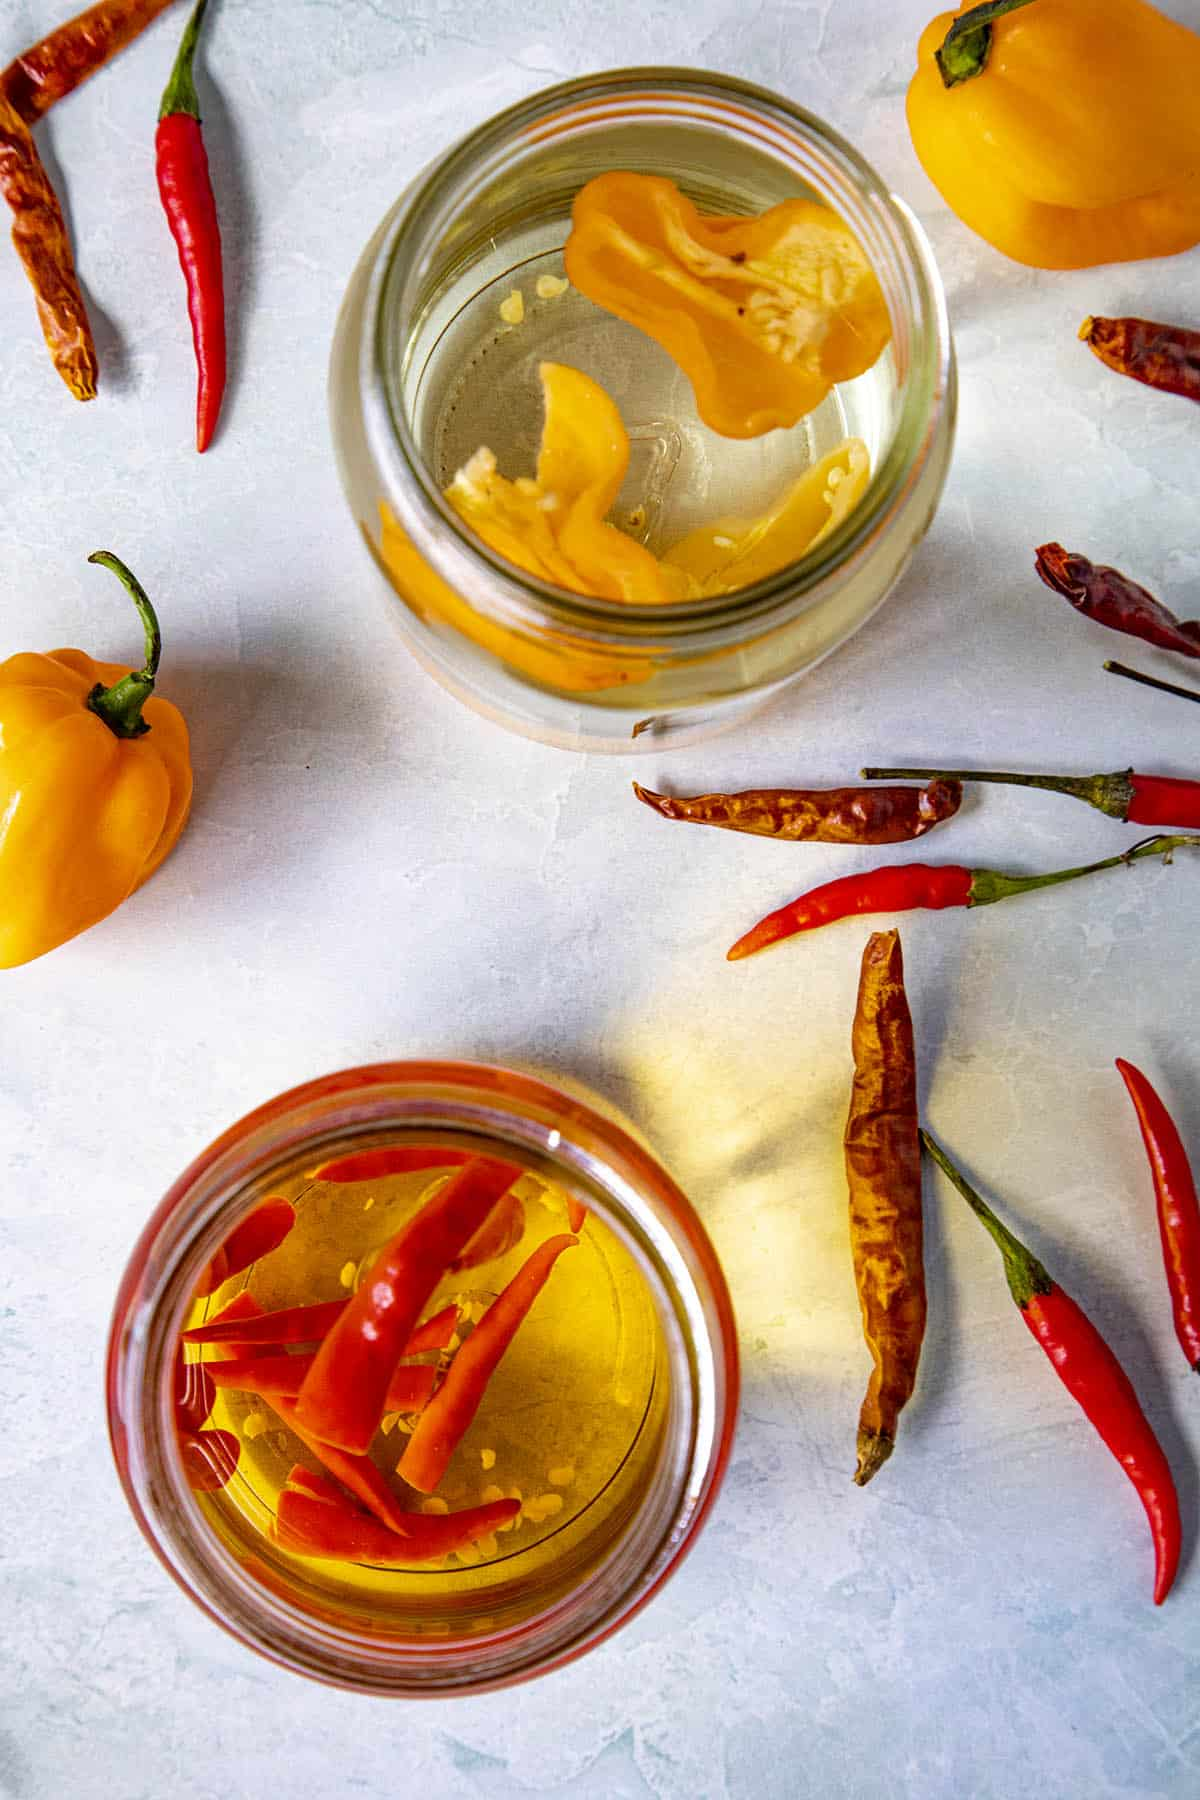 Spicy infused alcohol in jars with extra peppers